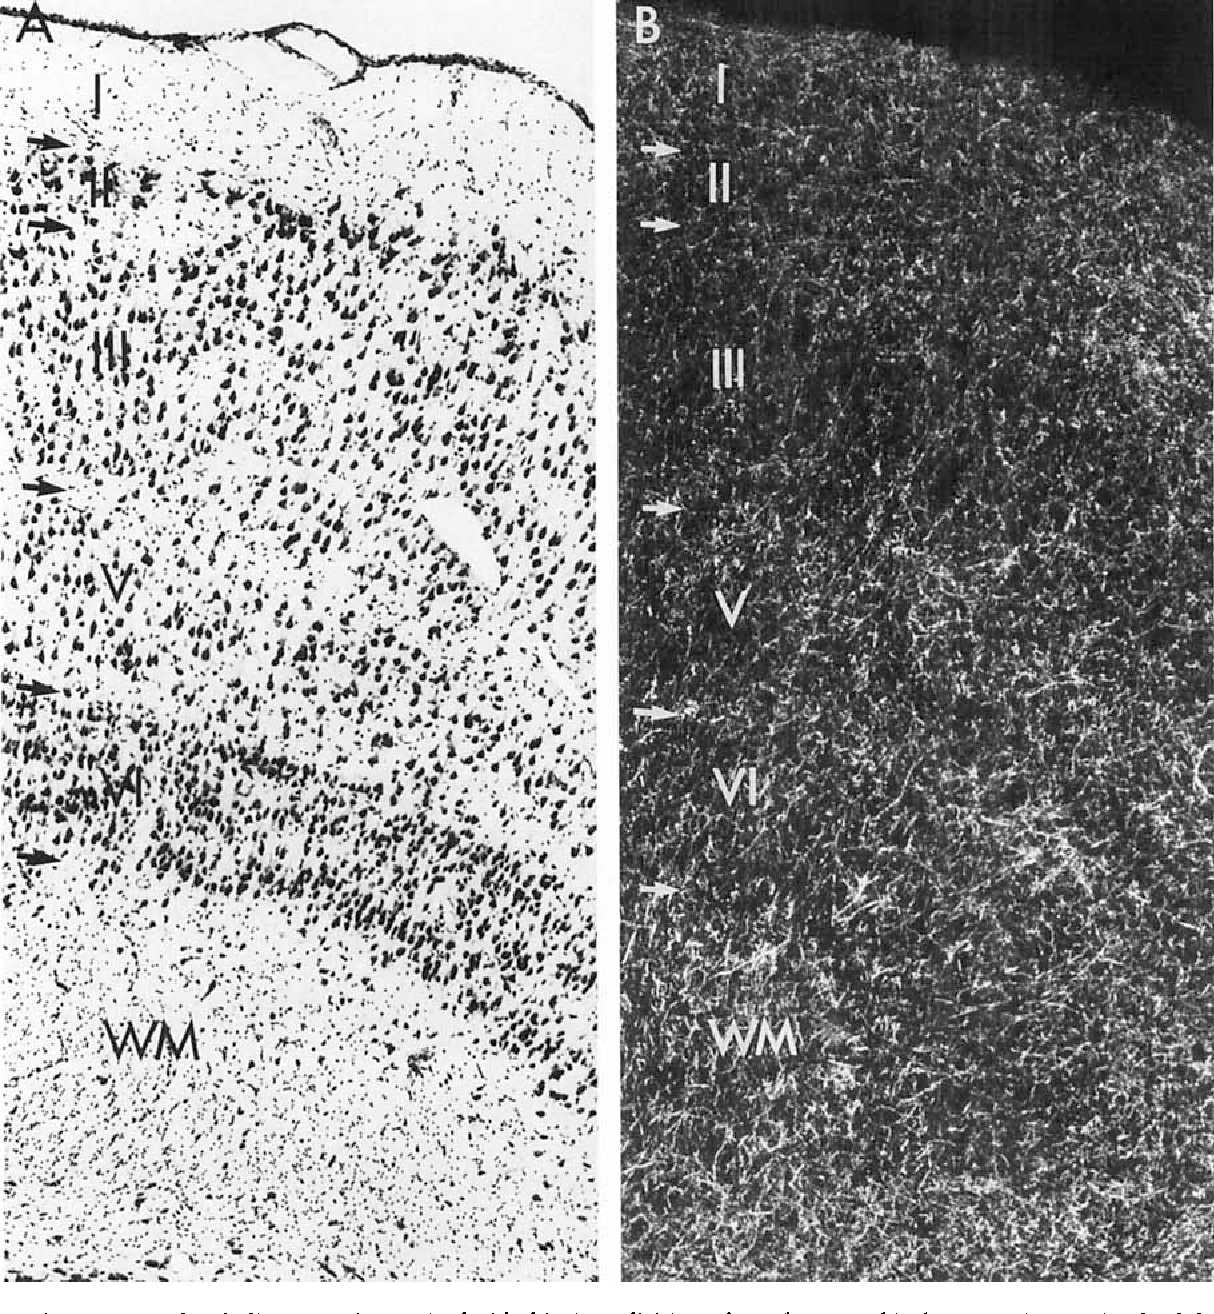 Fig. 8. Photomicrographs of adjacent sections stained with thionin (A) and ChAT immunohistochemistry (B) demonstrate, at higher magnification, the laminar organization of ChAT staining in the caudal division of monkey entorhinal cortex. Arrows in the left margin demarcate the different layers in the entorhinal field. For scale, see scale bar in Figure 6.